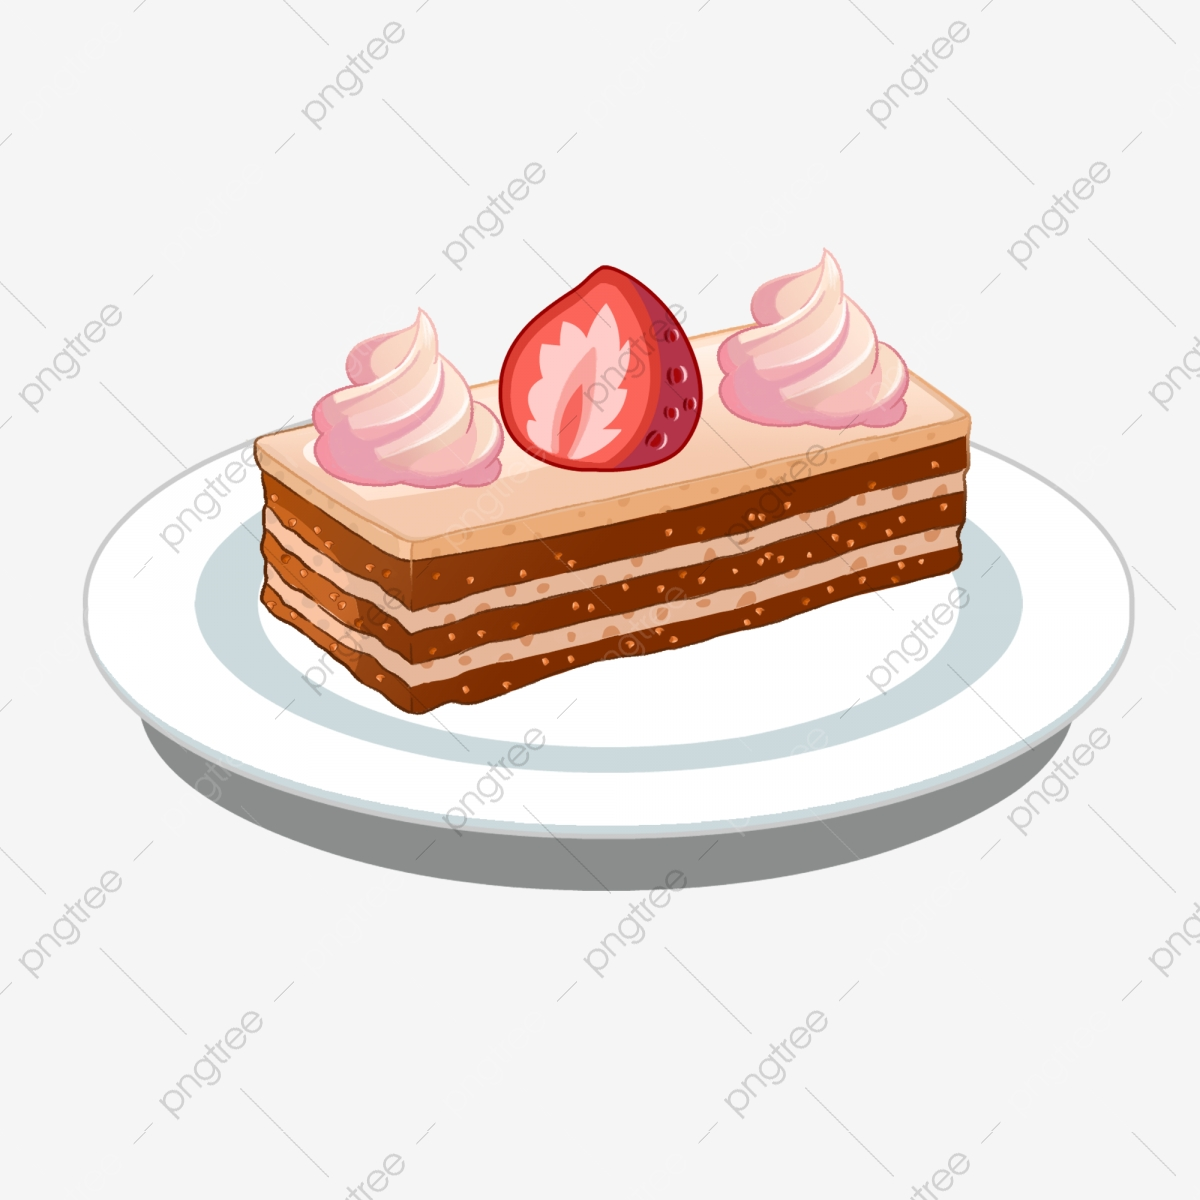 Creamy strawberry sweets png. Dessert clipart mousse cake